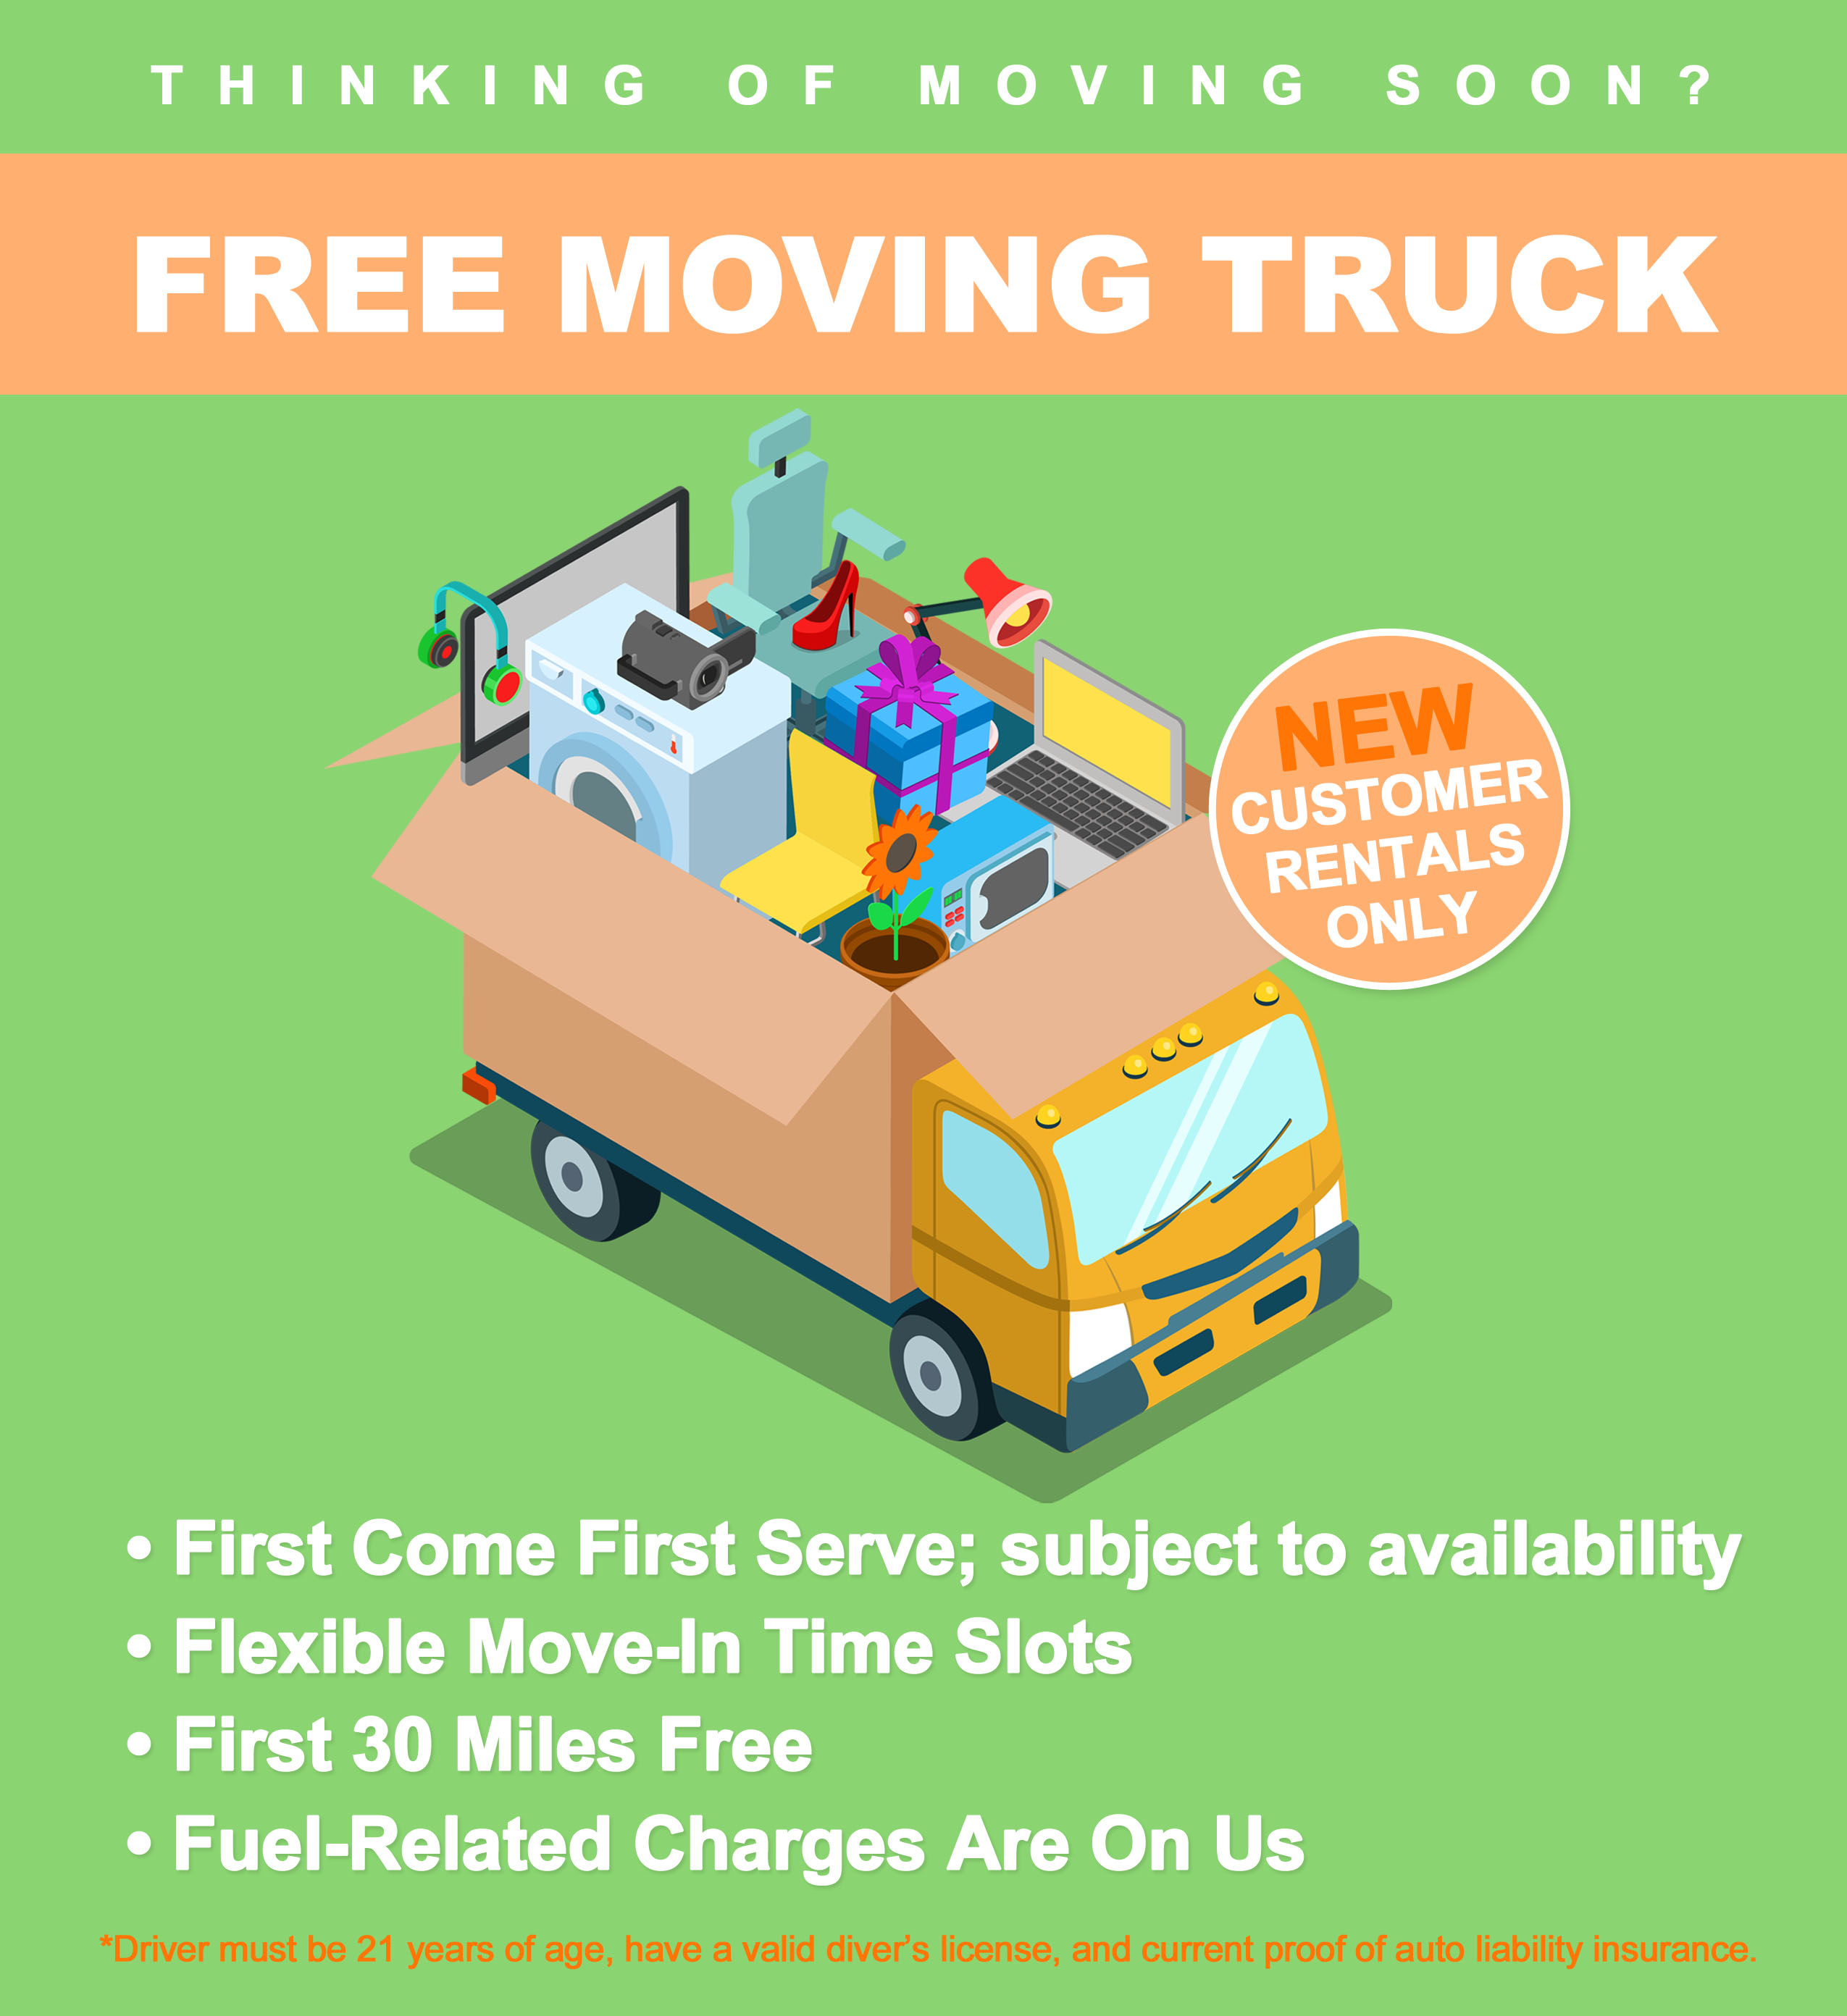 Free Moving Truck Information